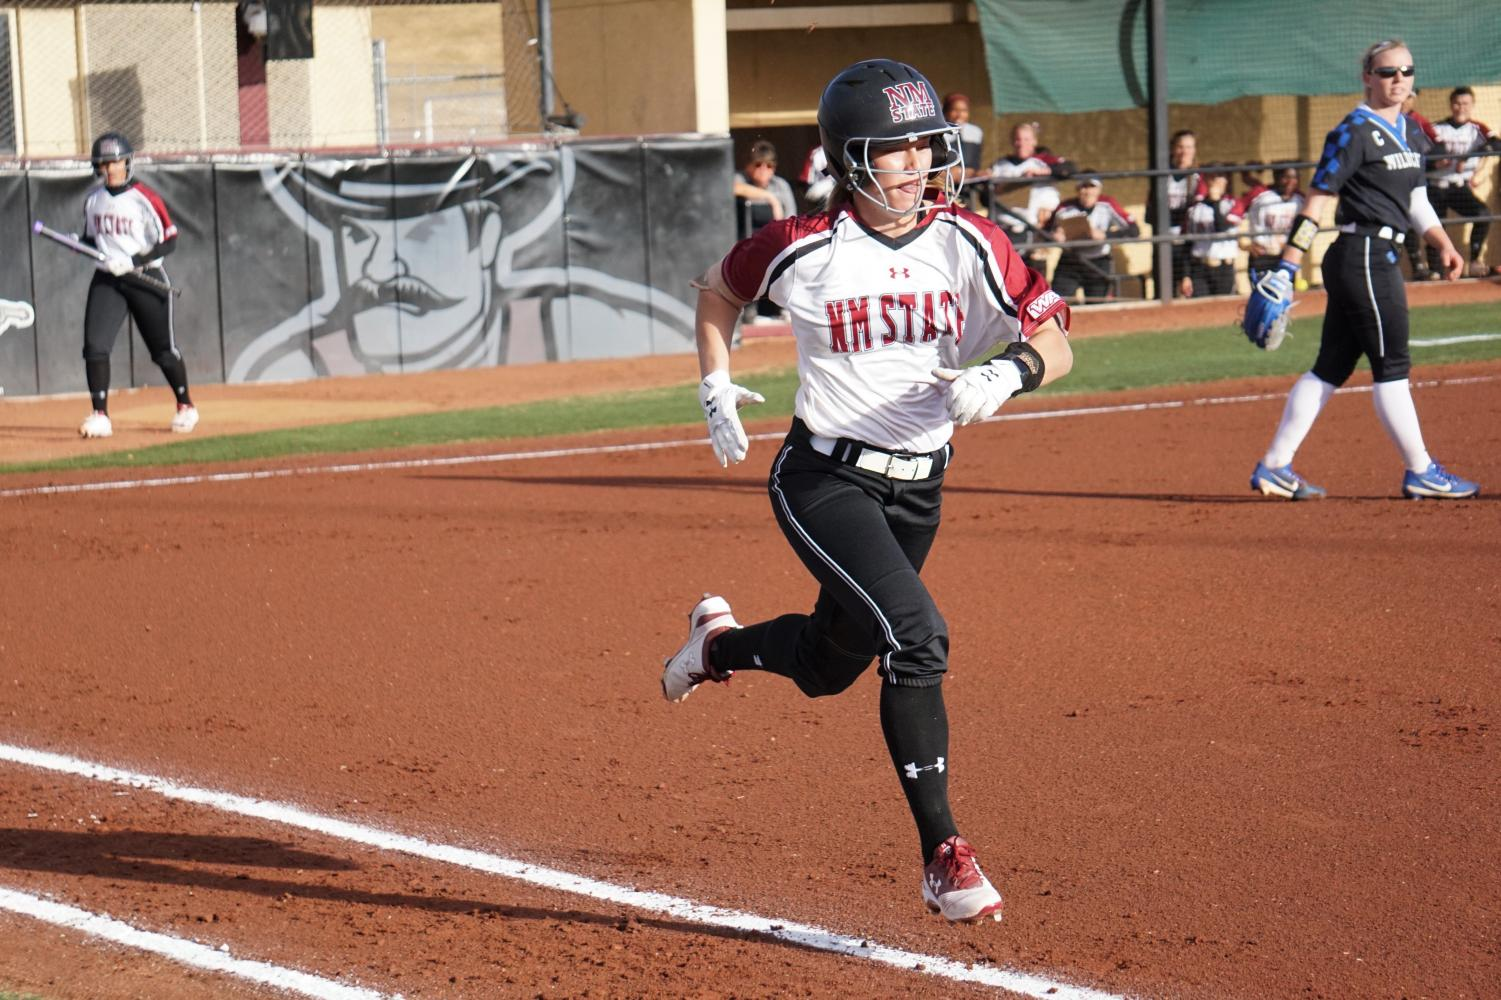 NMSU loses series finale after pulling off back-to-back upsets against nationally-ranked Kentucky to start the year.